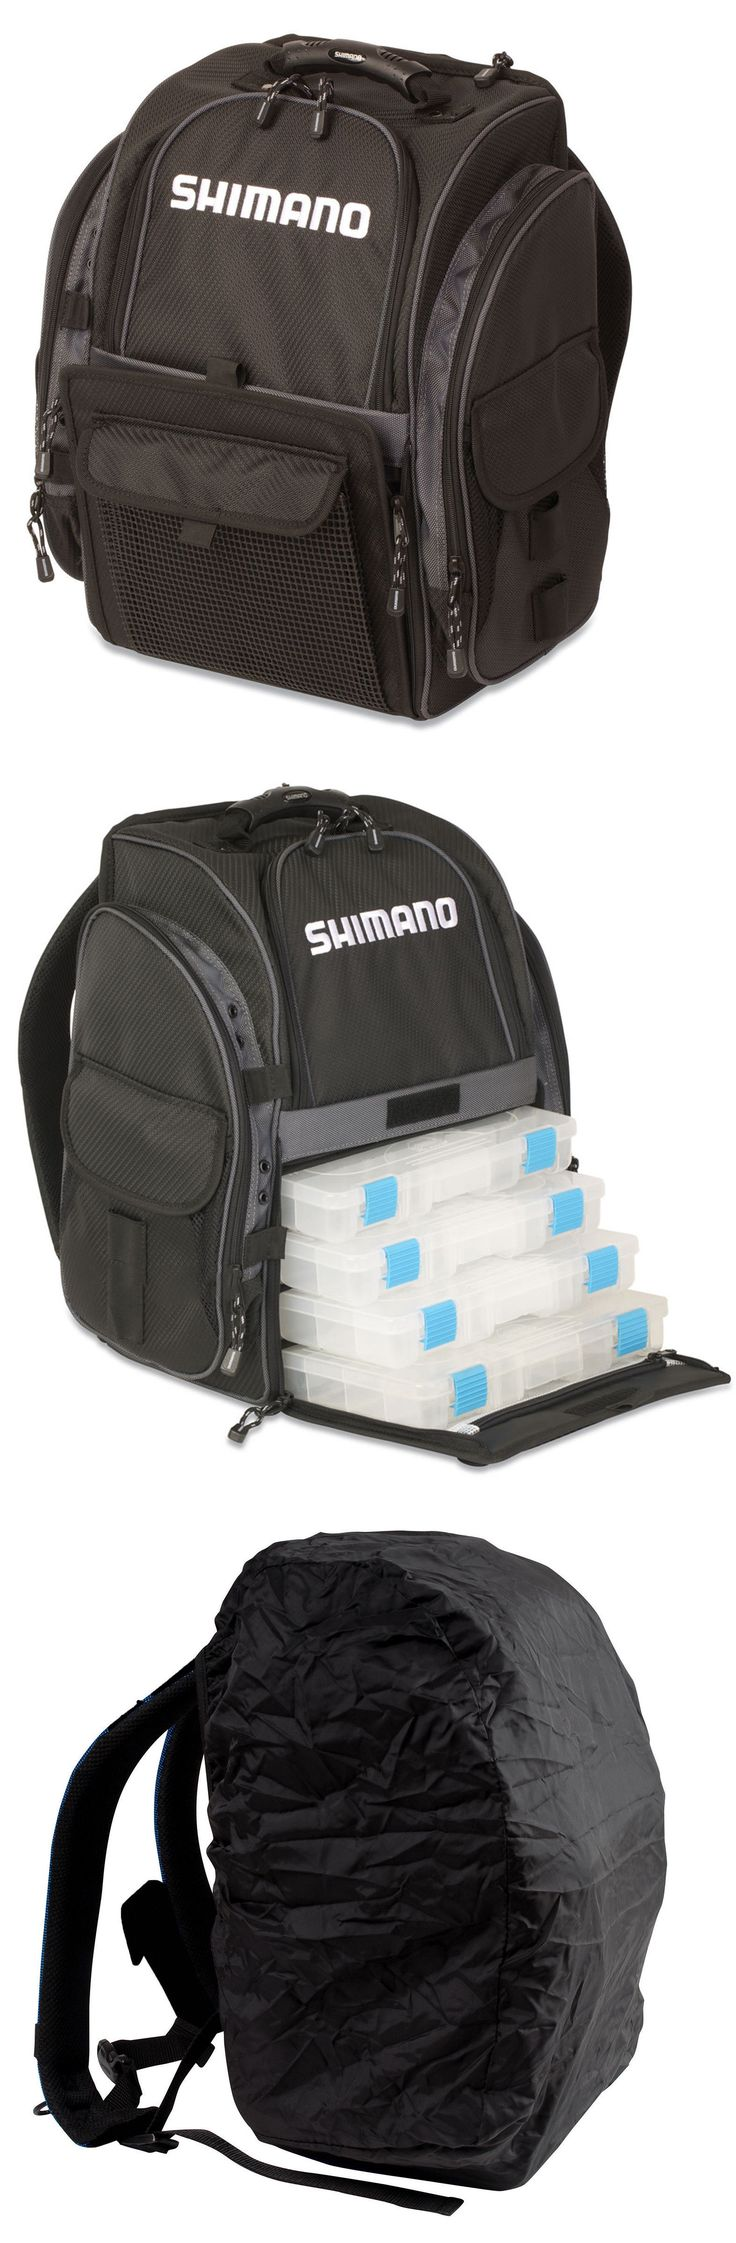 Tackle Boxes and Bags 22696: Shimano Blackmoon Fishing Backpack Medium -> BUY IT NOW ONLY: $112.49 on eBay!